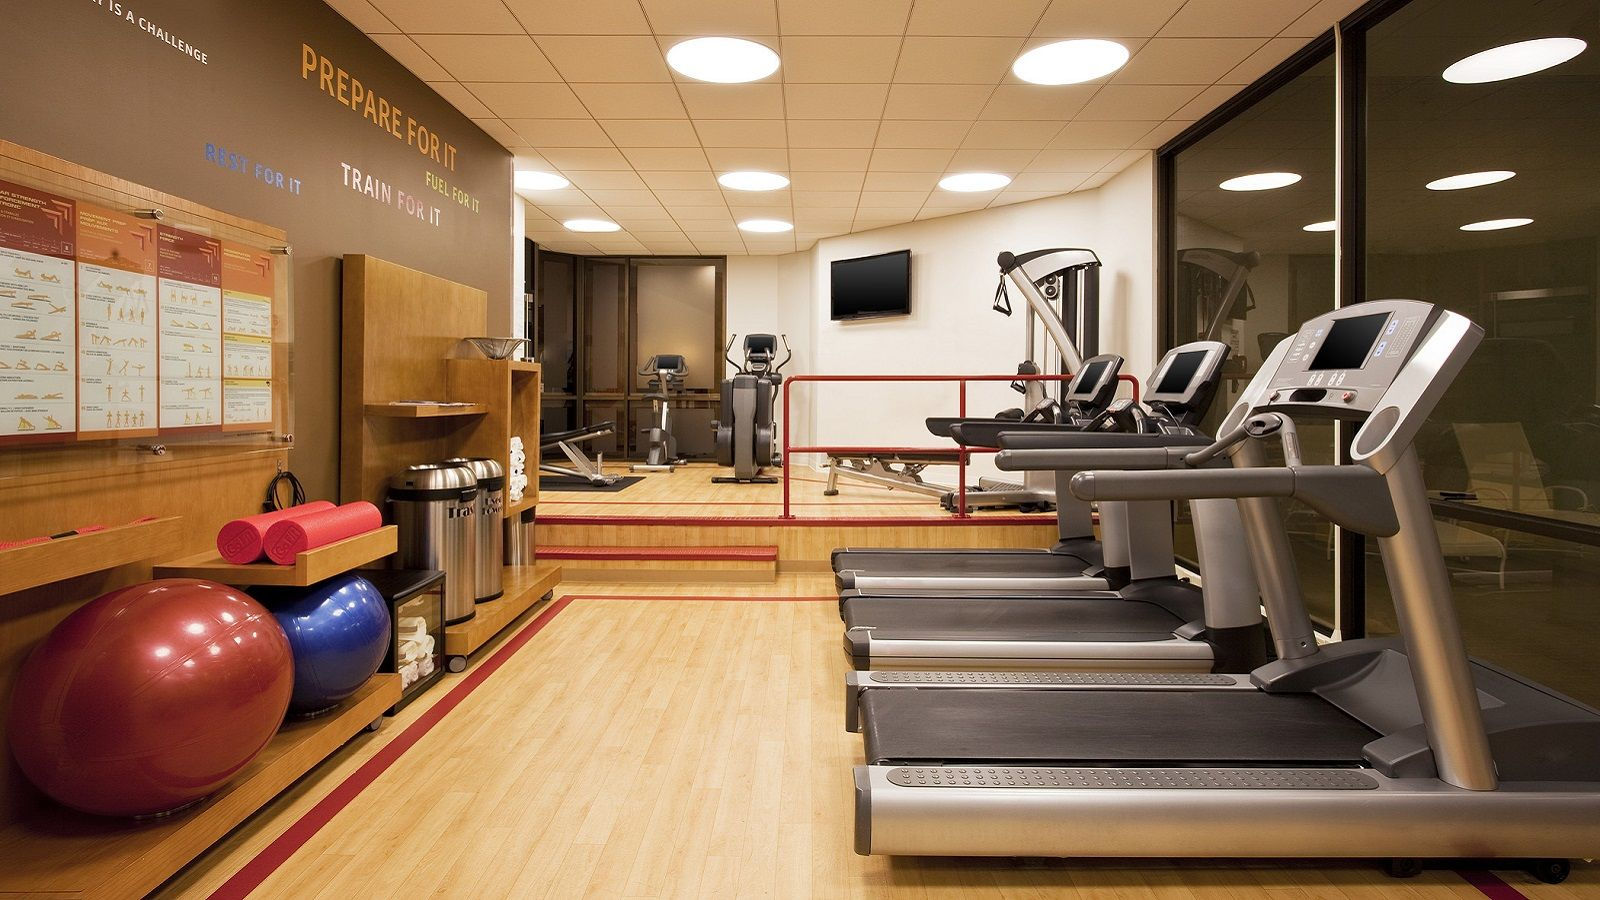 Hotel Amenities - Fitness Center